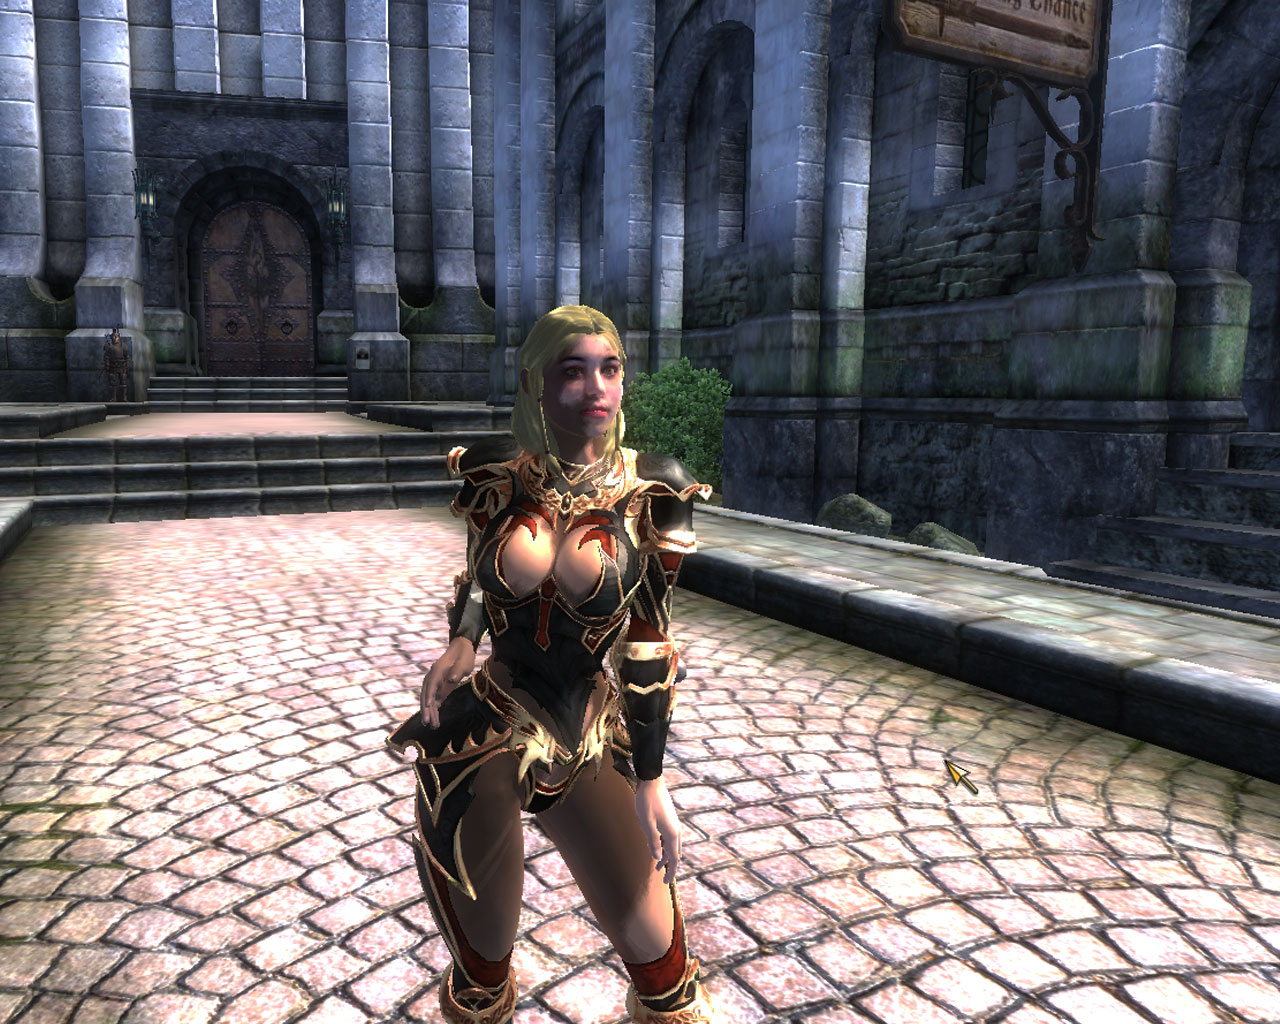 Elder scroll oblivion hg eye candy adult pictures